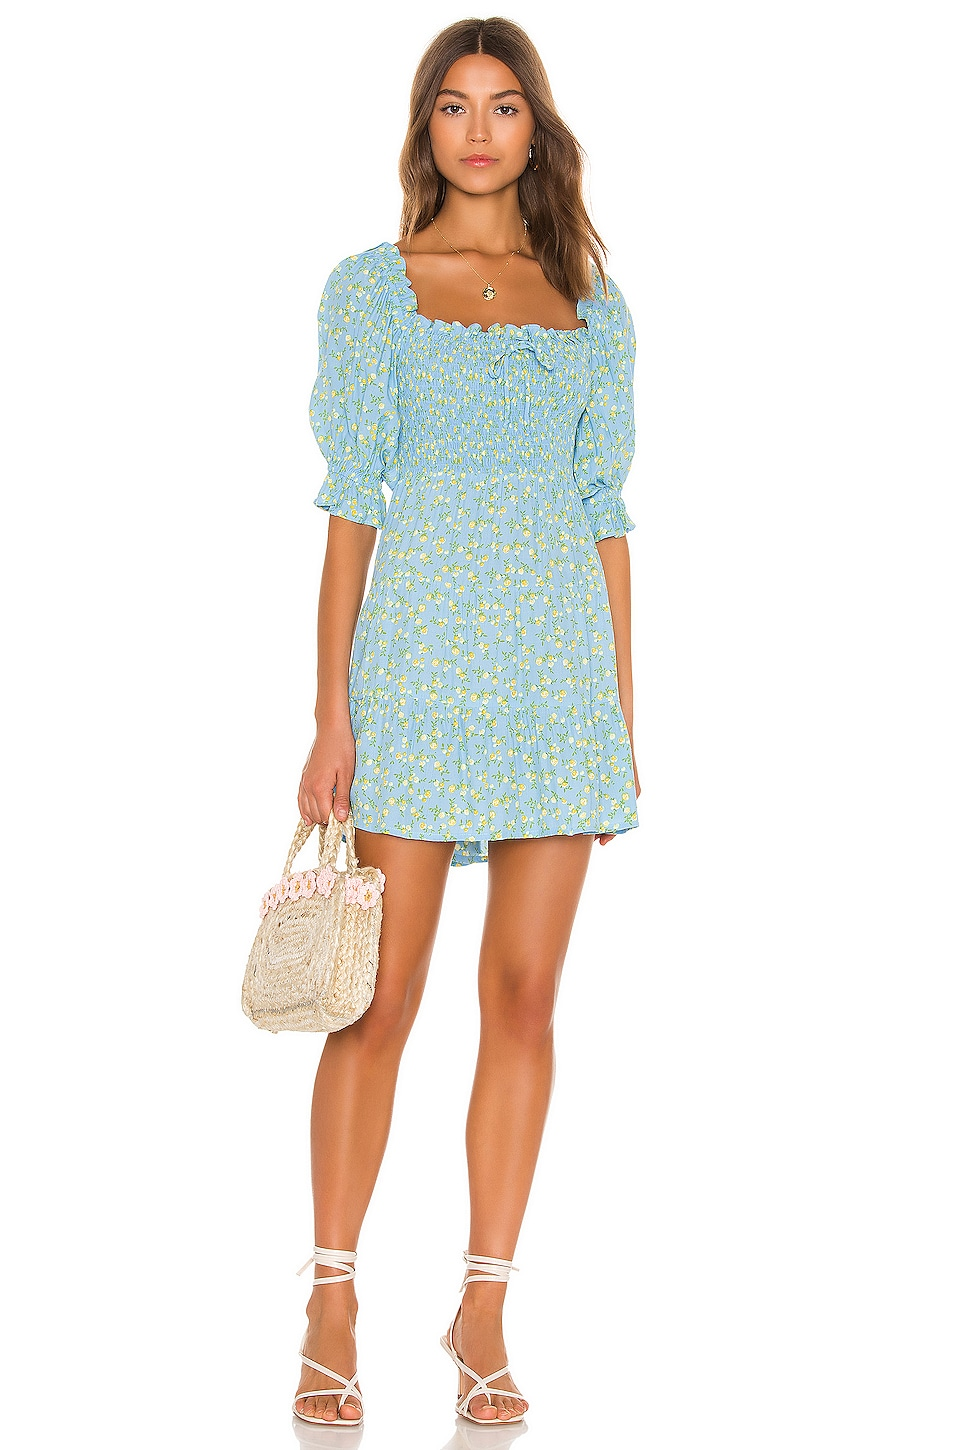 Charlotte Mini Dress             FAITHFULL THE BRAND                                                                                                       CA$ 201.31 9